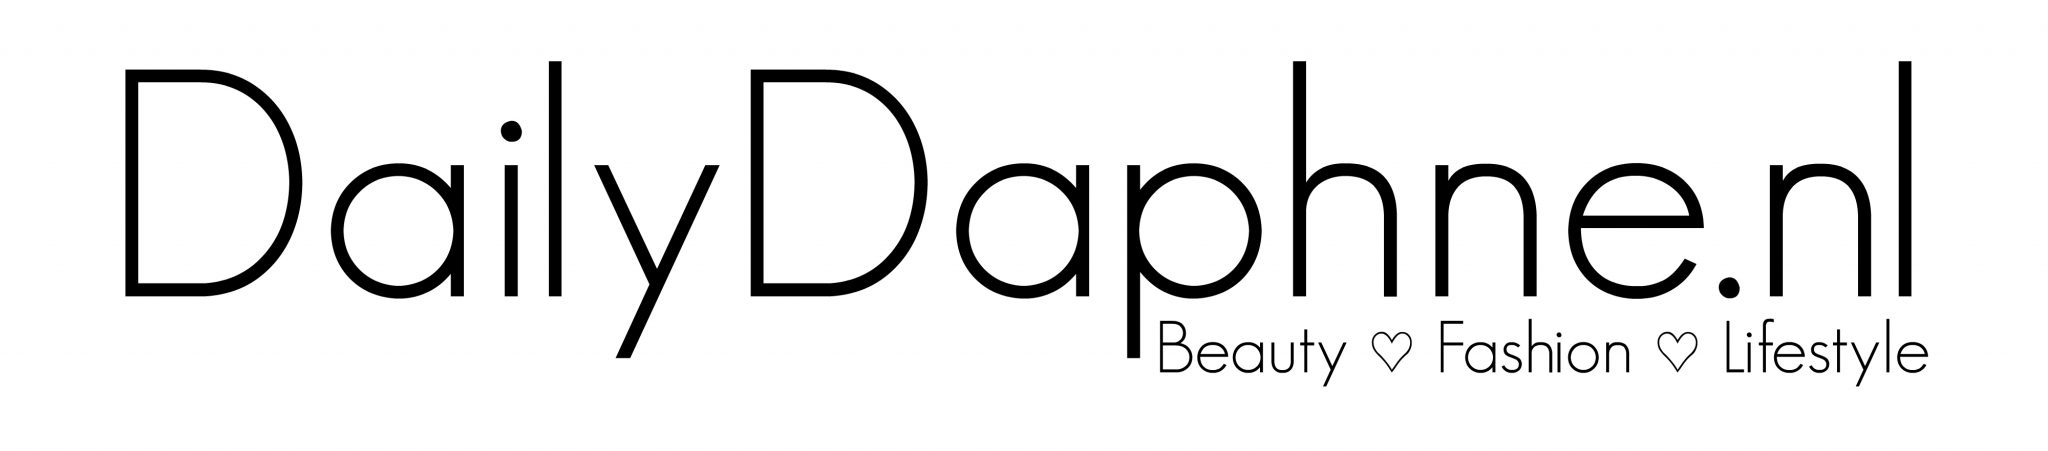 DailyDaphne Coupons